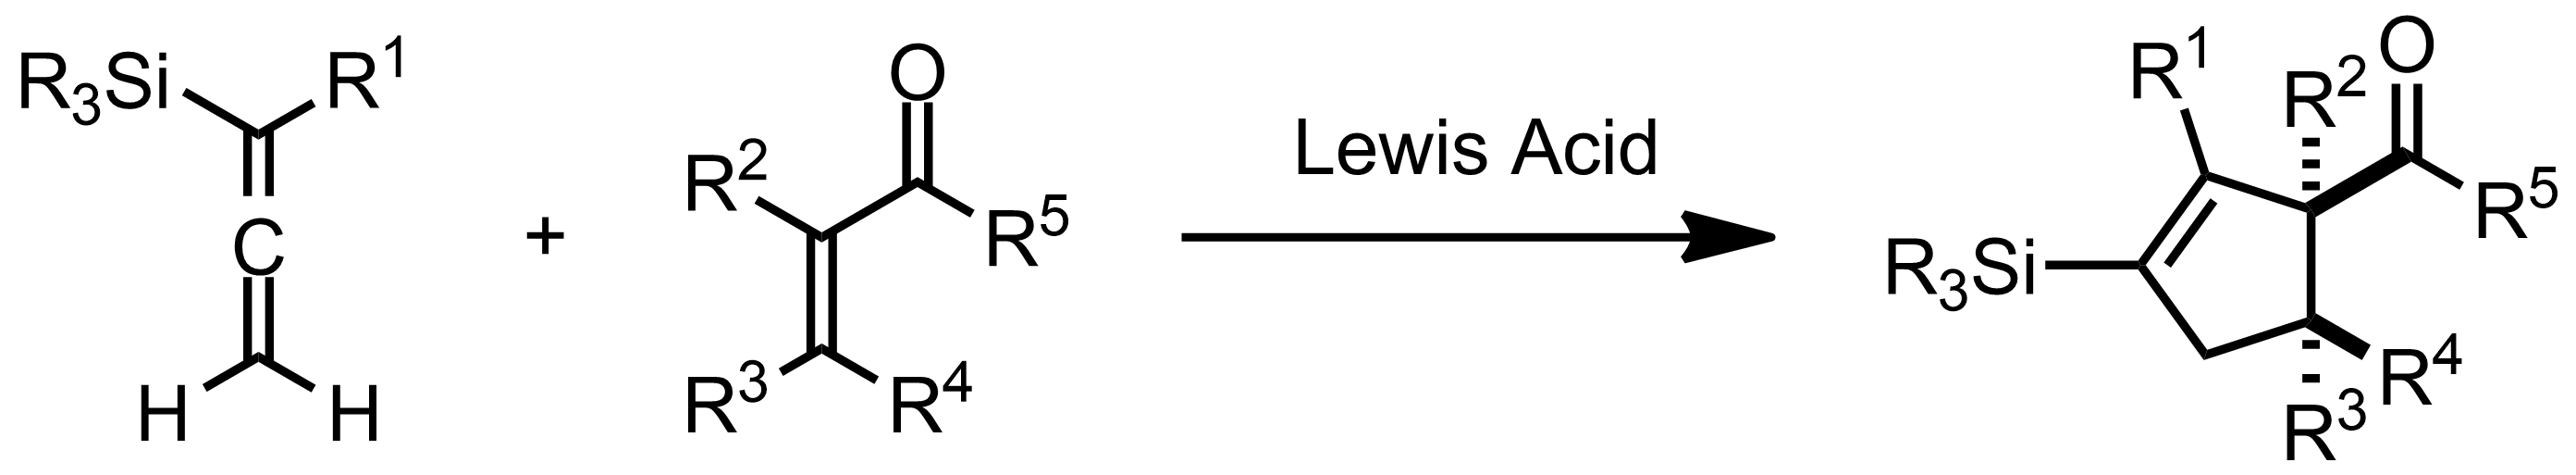 Schematic representation of the Danheiser Annulation.